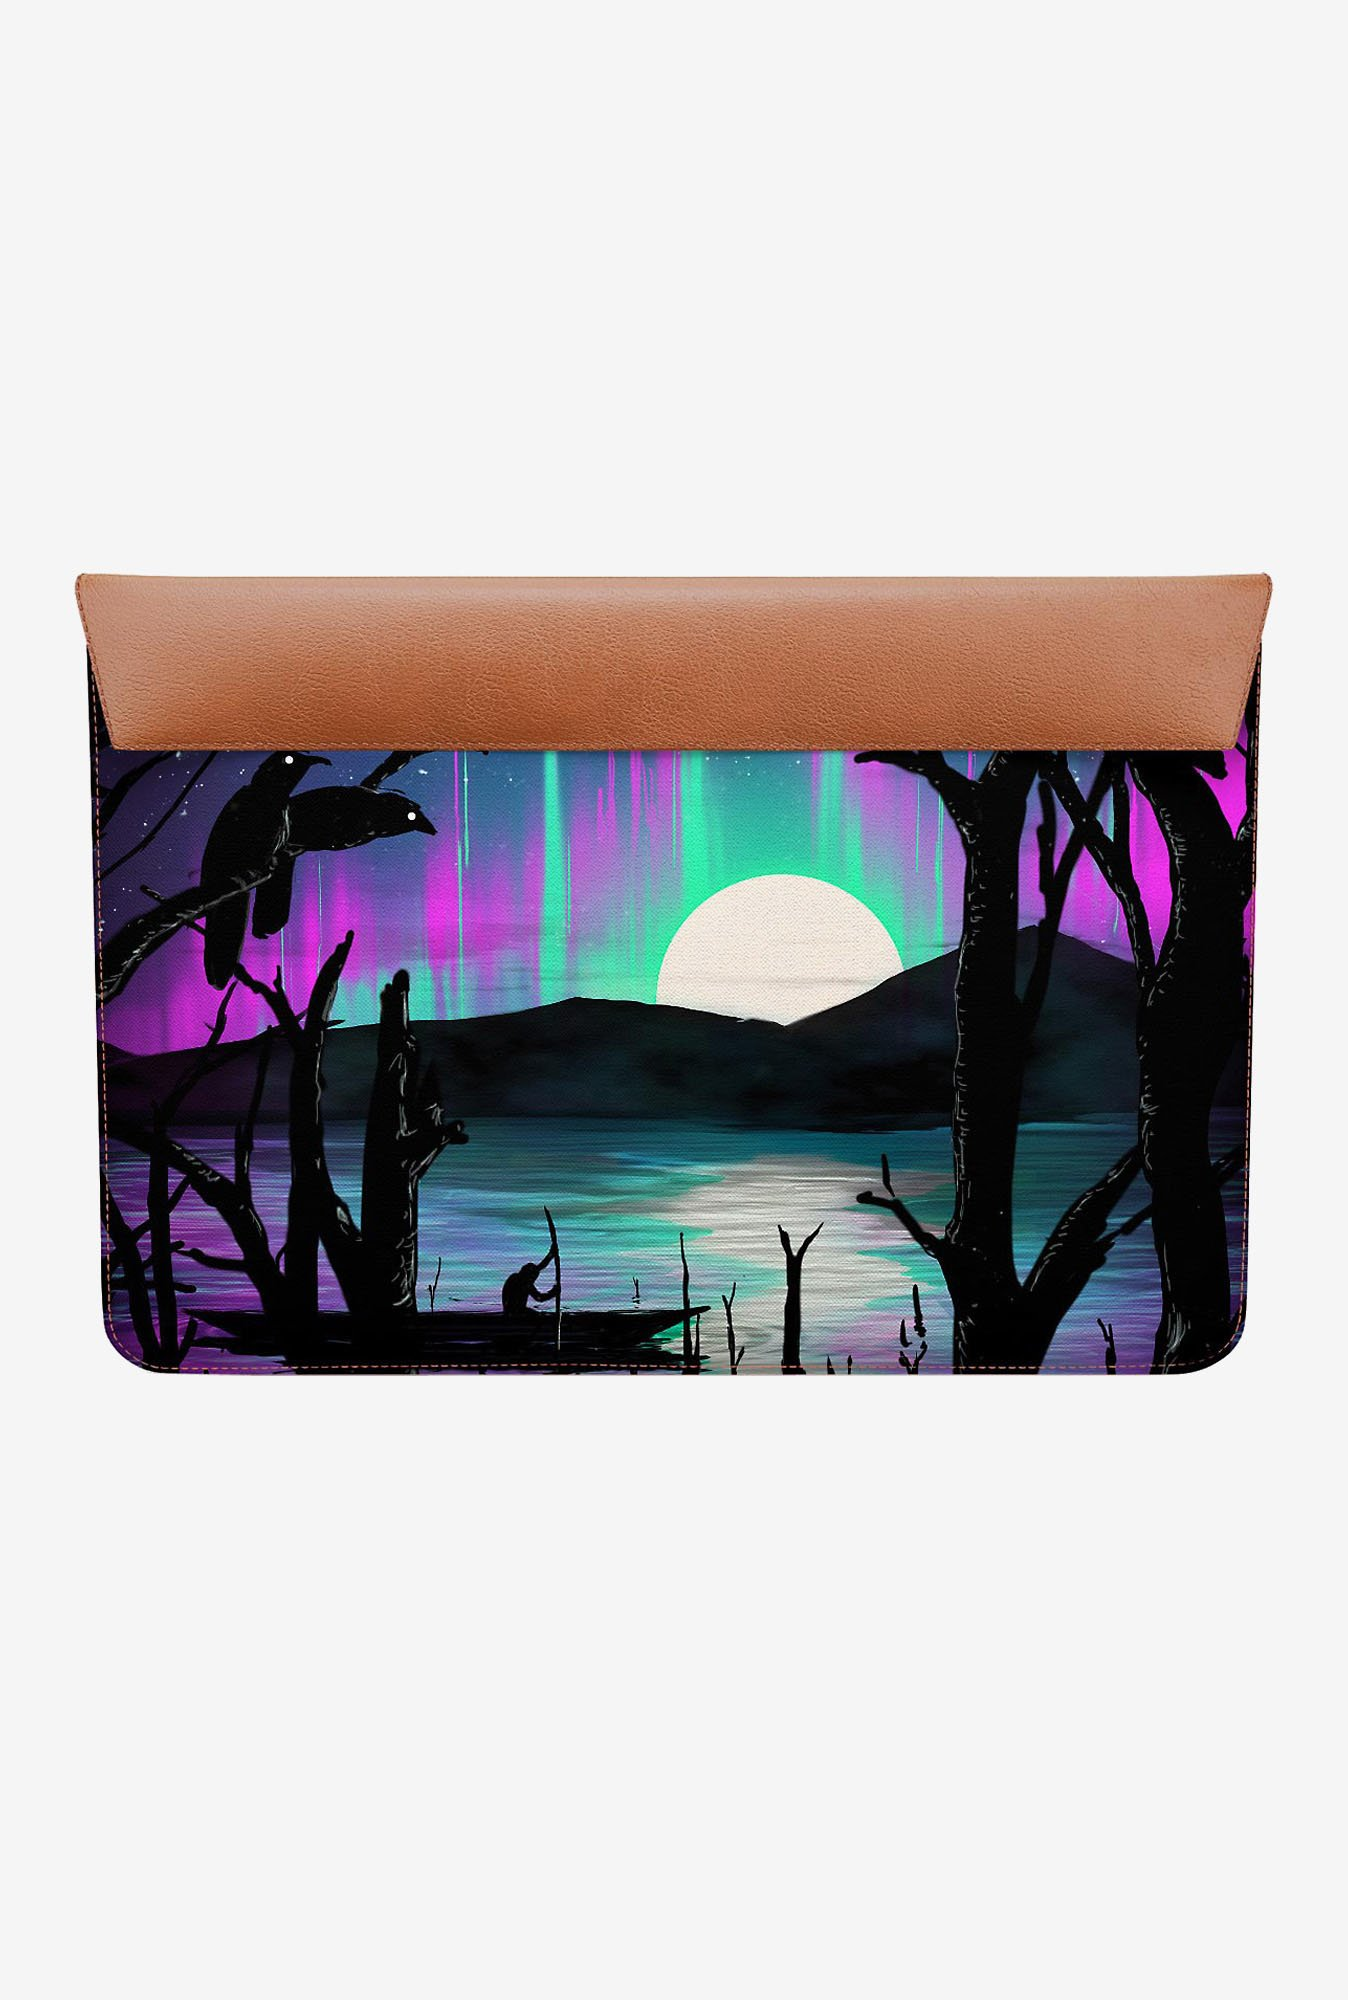 DailyObjects Night Aurora MacBook Pro 13 Envelope Sleeve